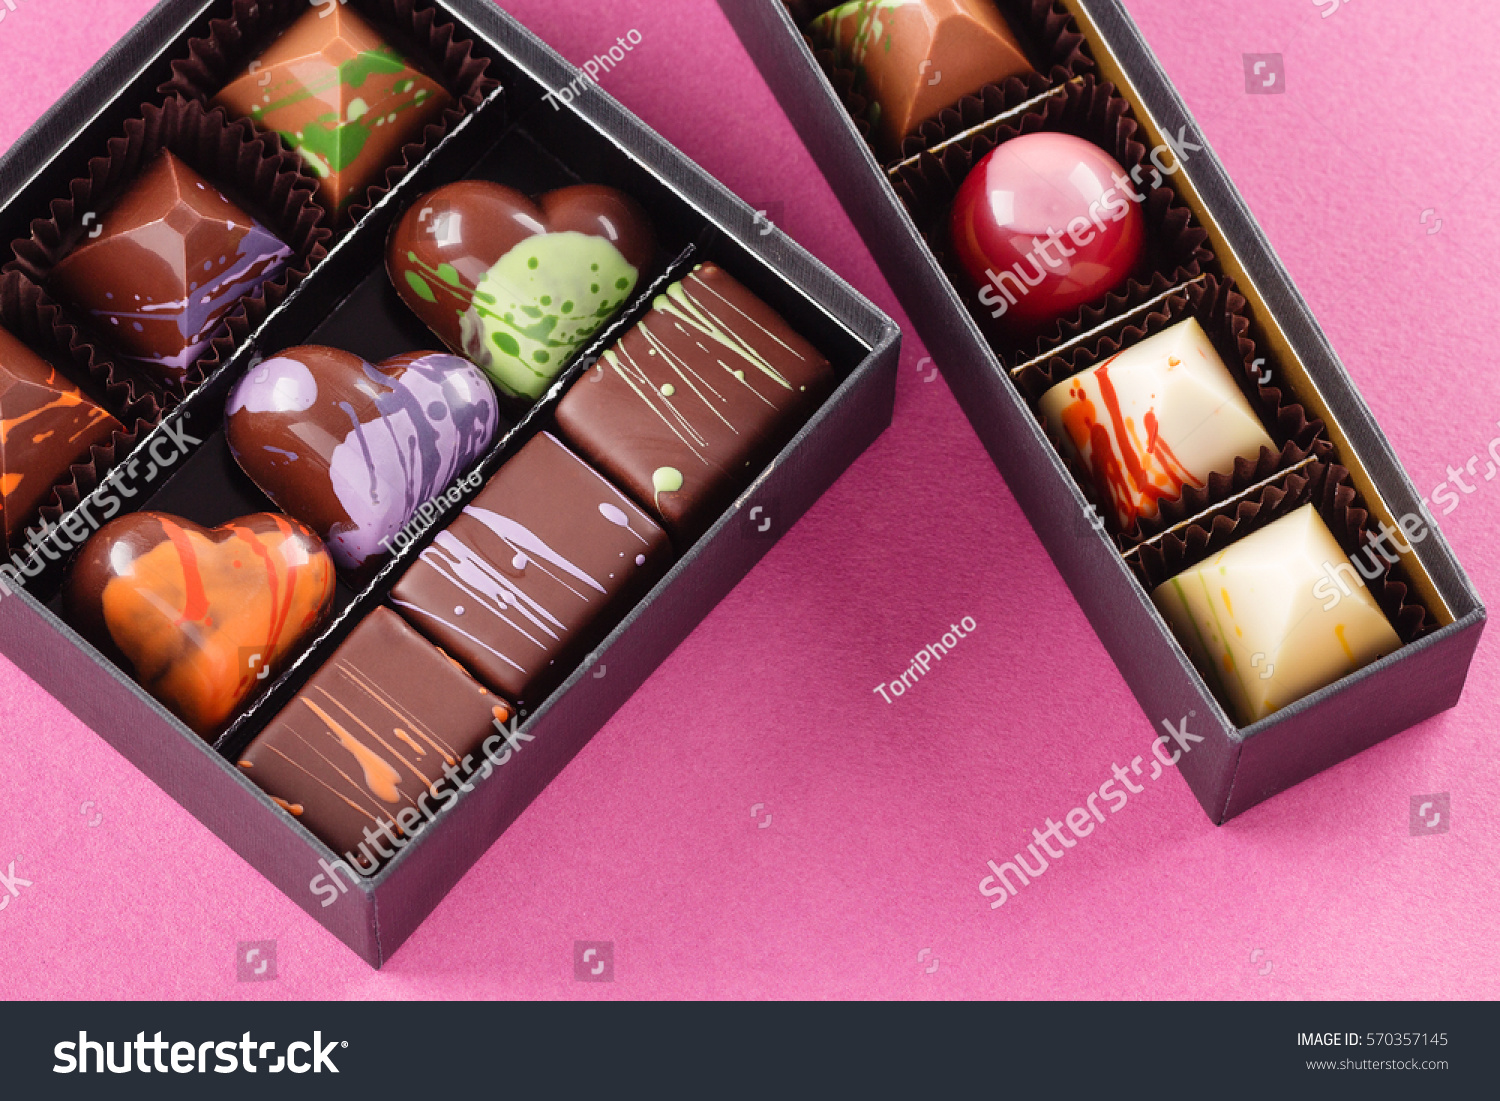 https://www.shutterstock.com/image-photo/set-colorful-handmade-luxury-chocolate-bonbons-570357145